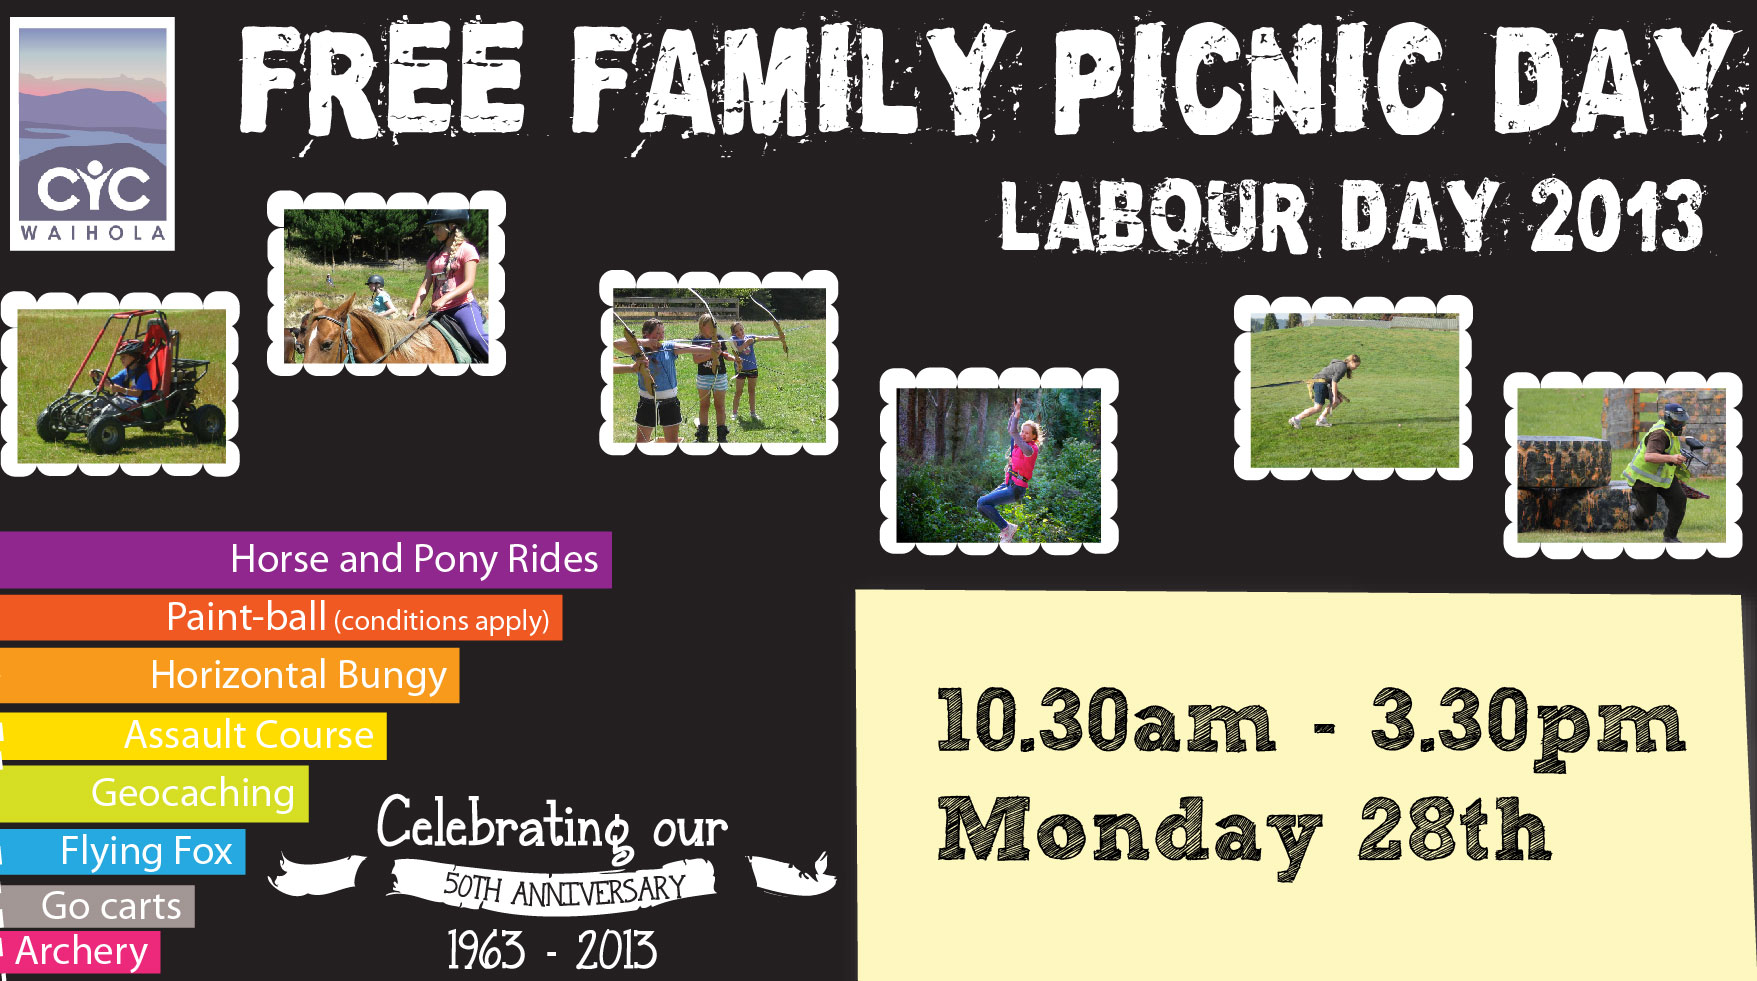 Free Family Picnic Day